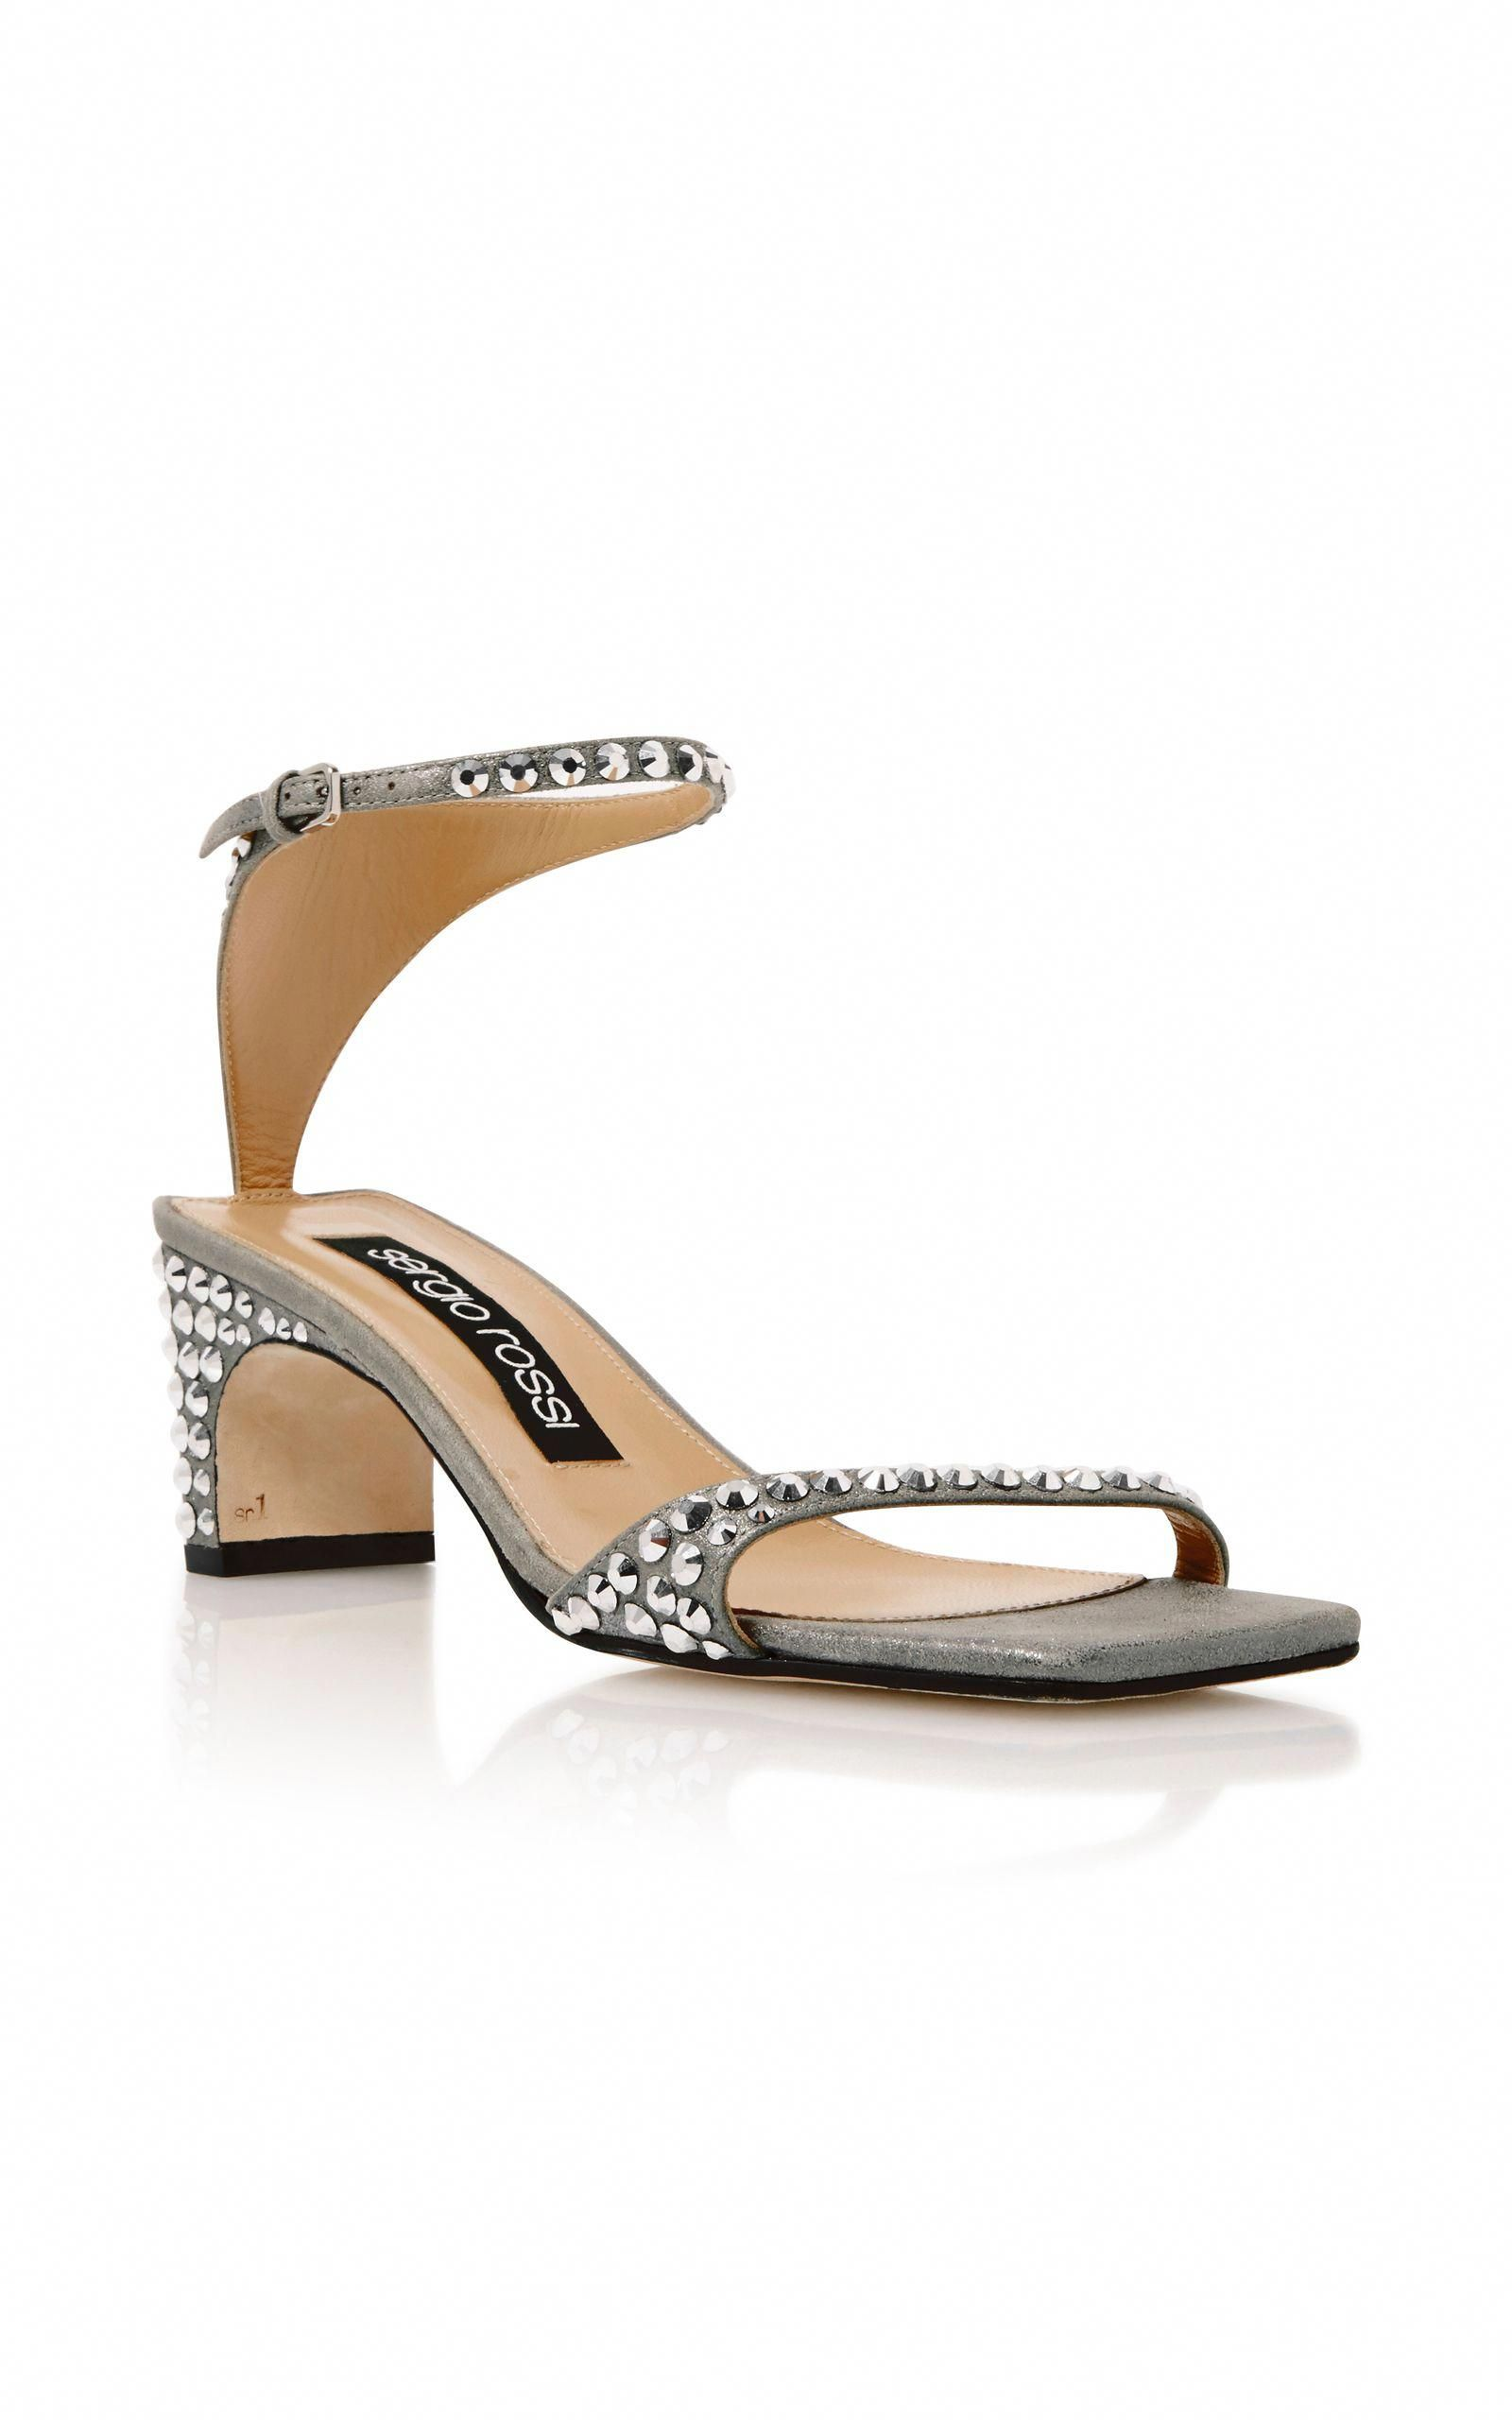 91a344882c842 SERGIO ROSSI Silver Suede Jeweled Sandals.  sergiorossi  shoes  sandals